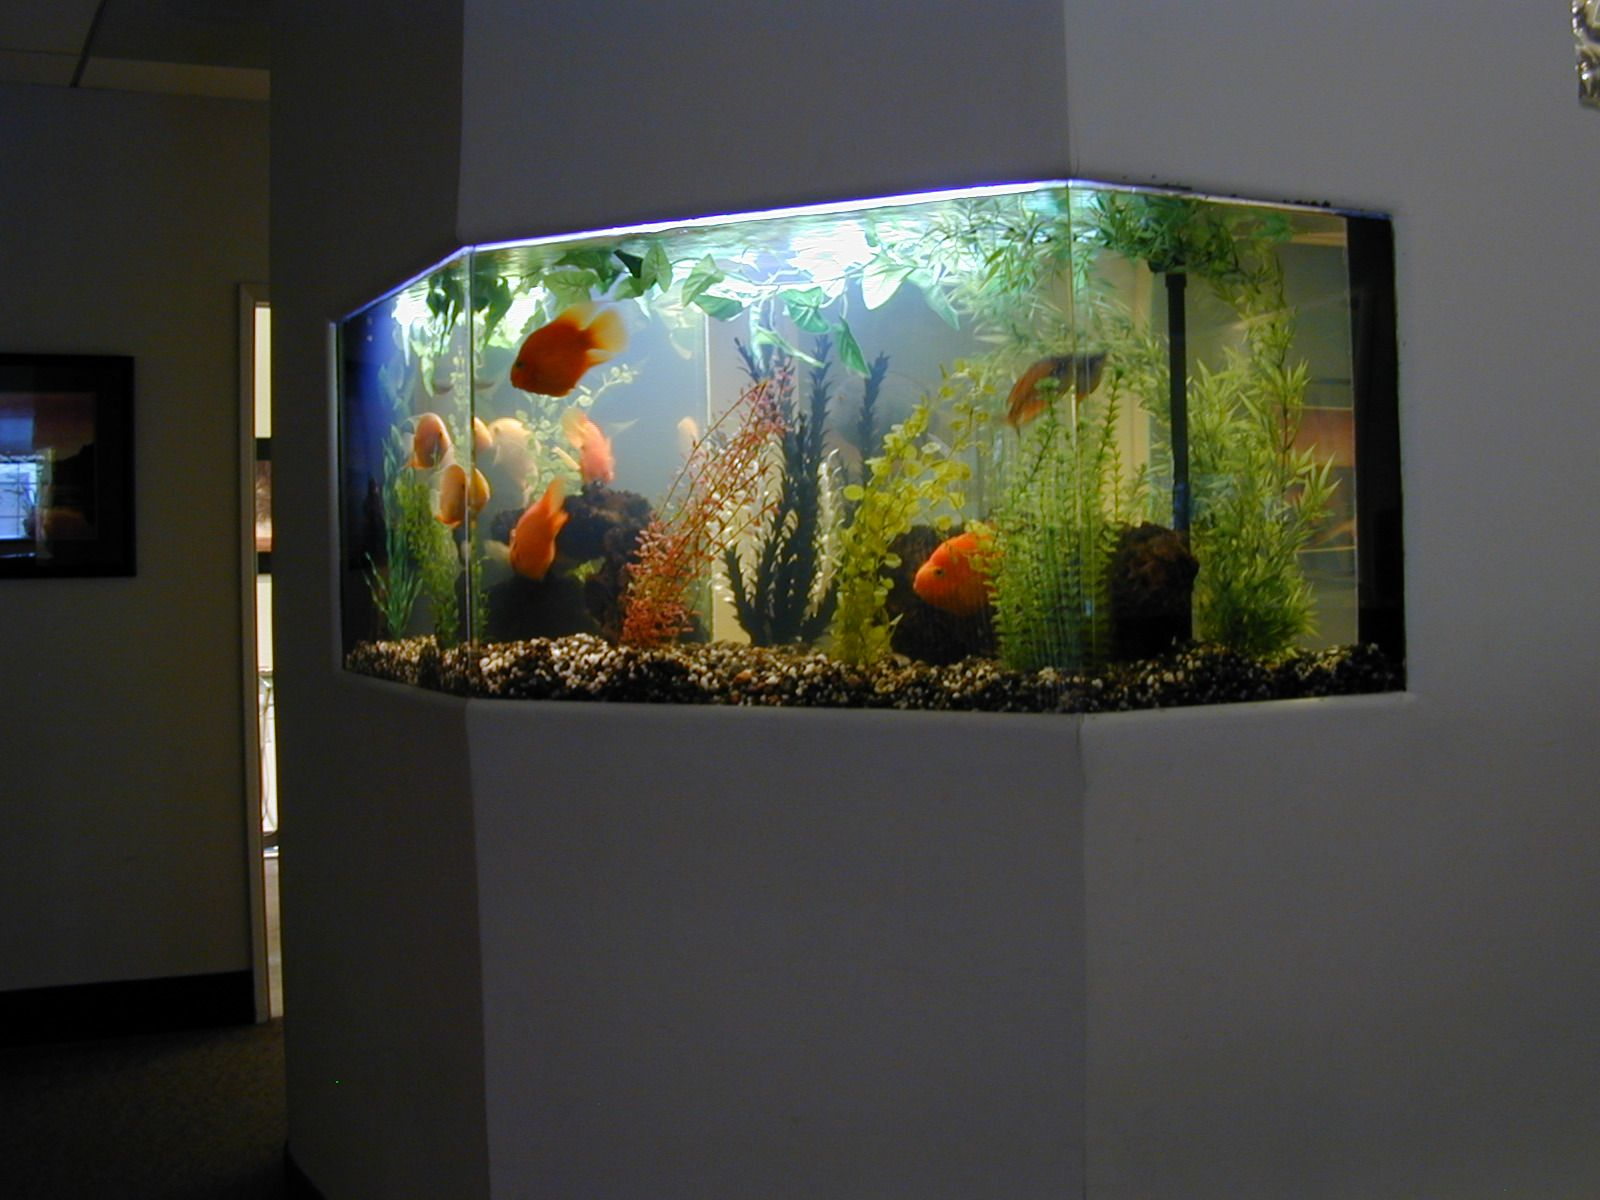 Fish aquarium bed frame - 25 Best Ideas About Tanked Aquariums On Pinterest Amazing Aquariums Amazing Fish Tanks And Big Fish Tanks